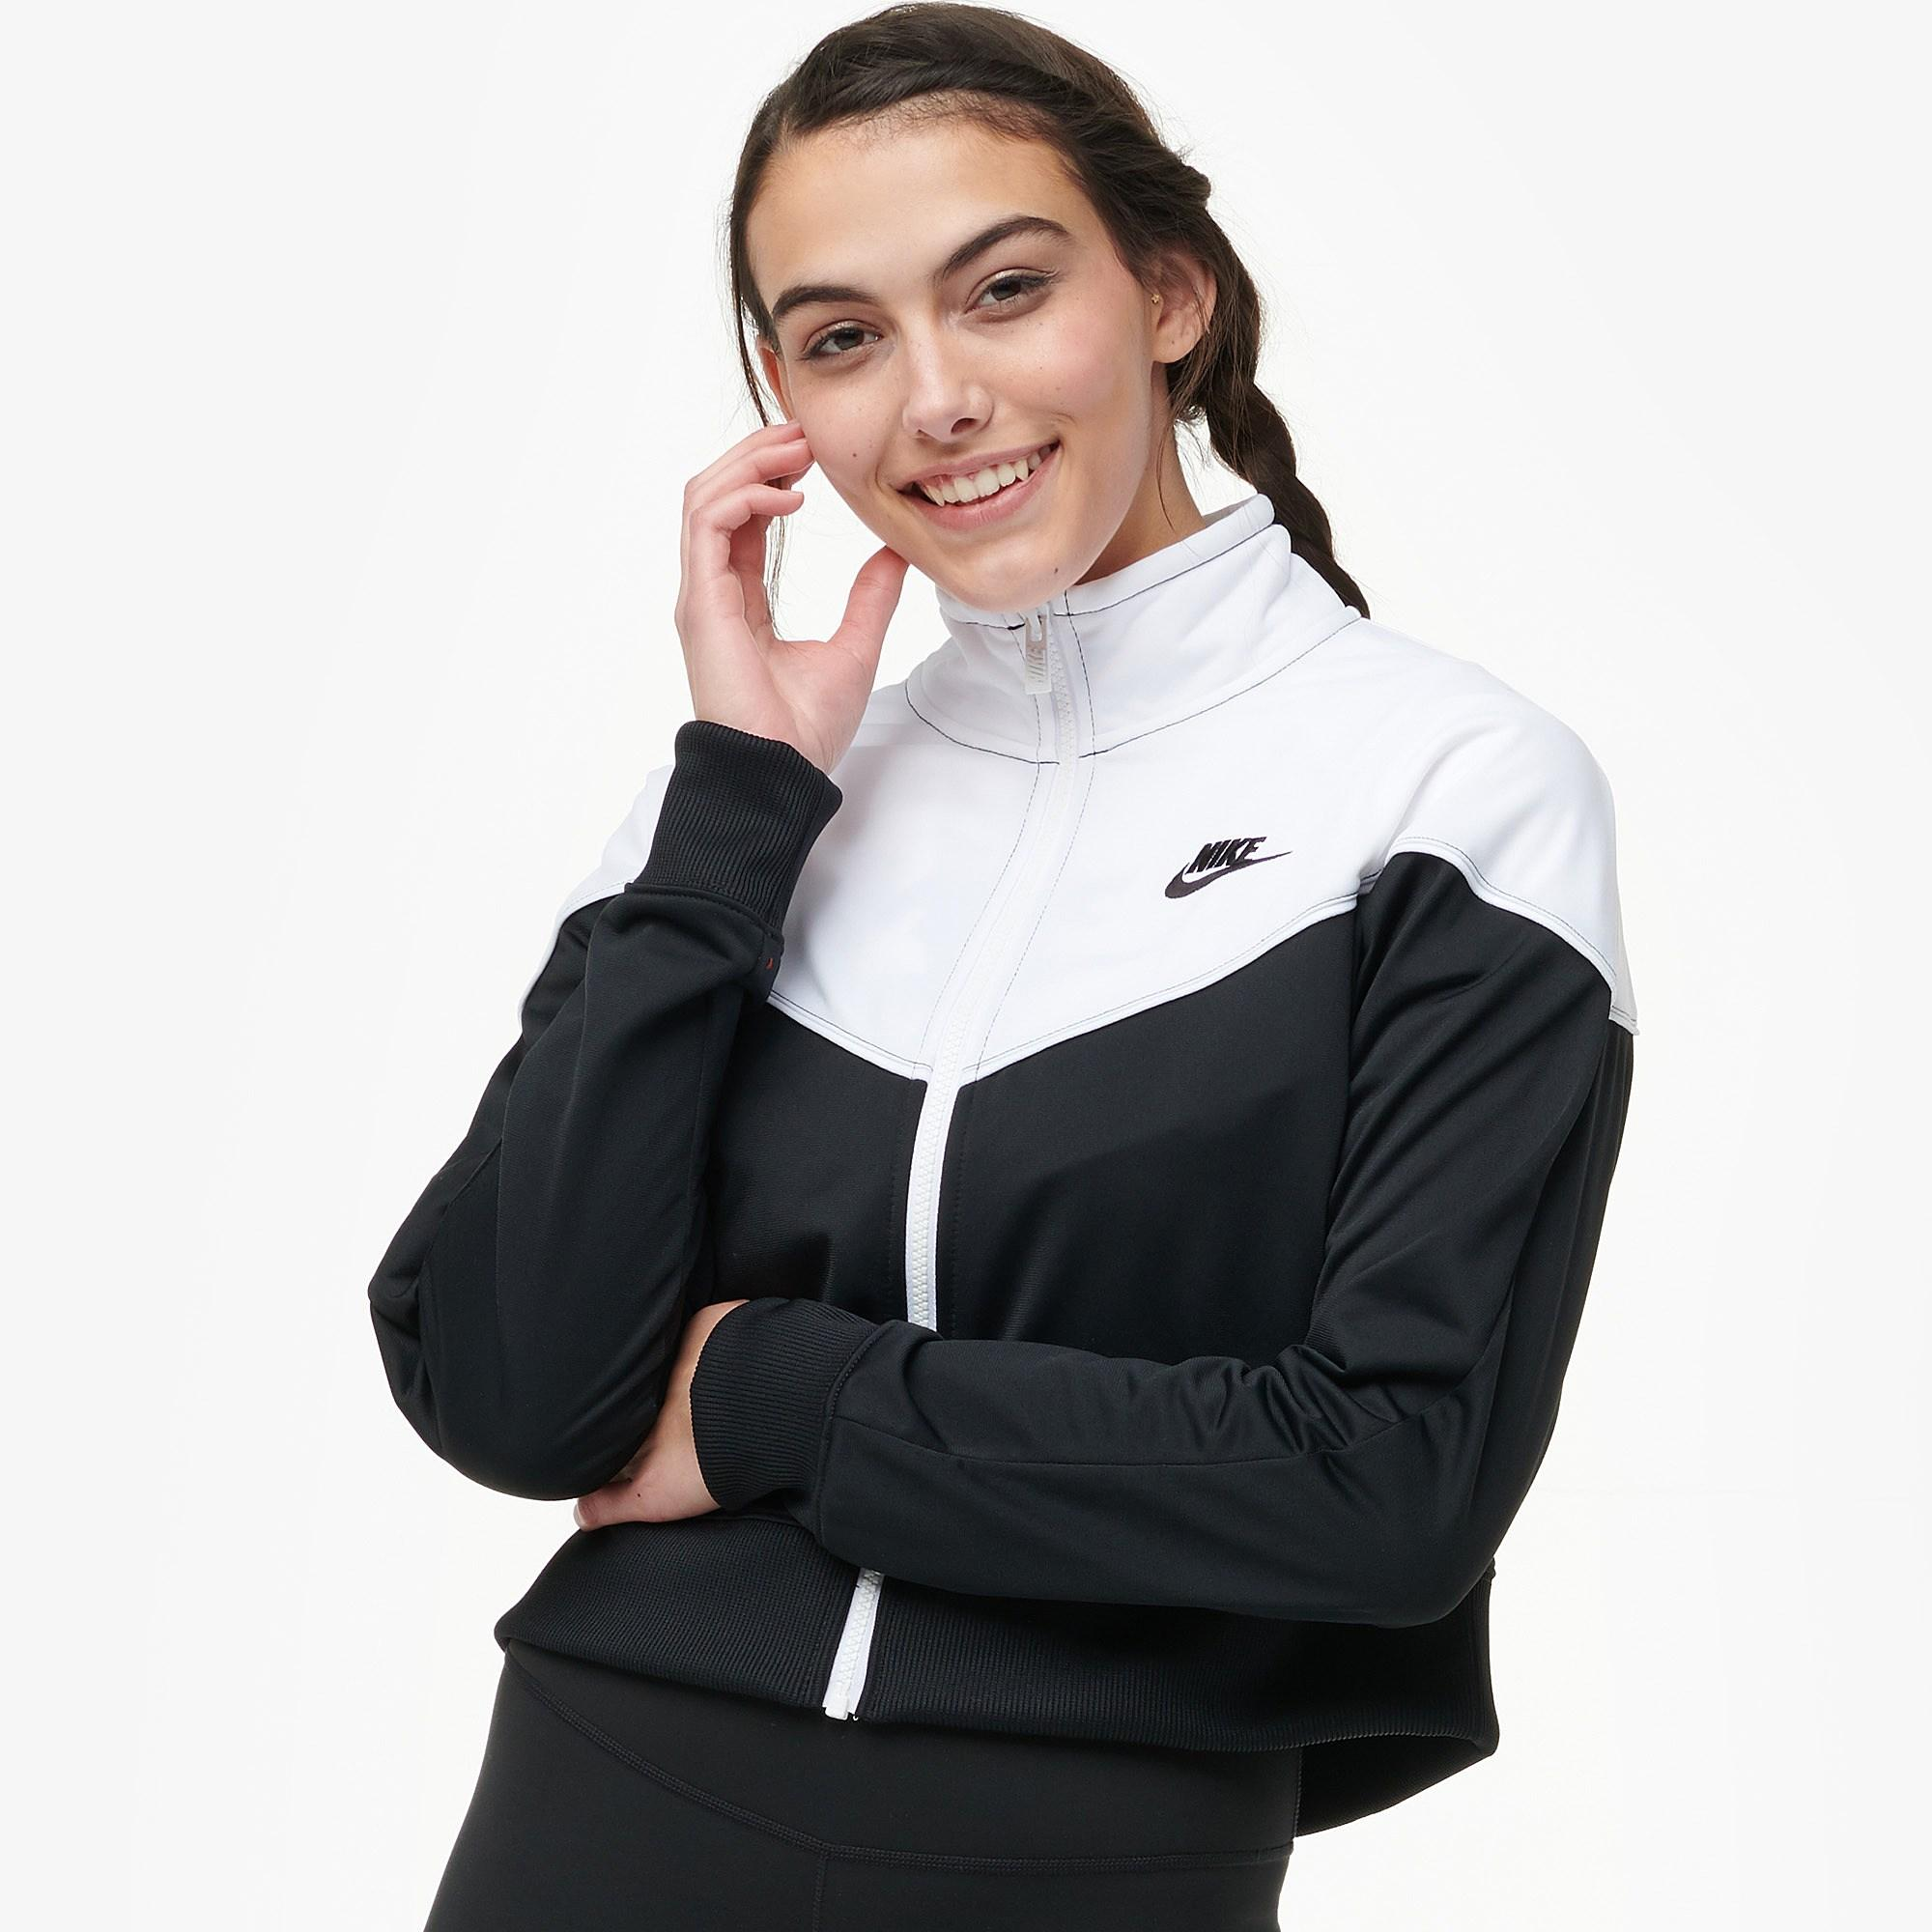 982e3876cf3 Lyst - Nike Heritage Cropped Track Jacket in Black - Save 28%